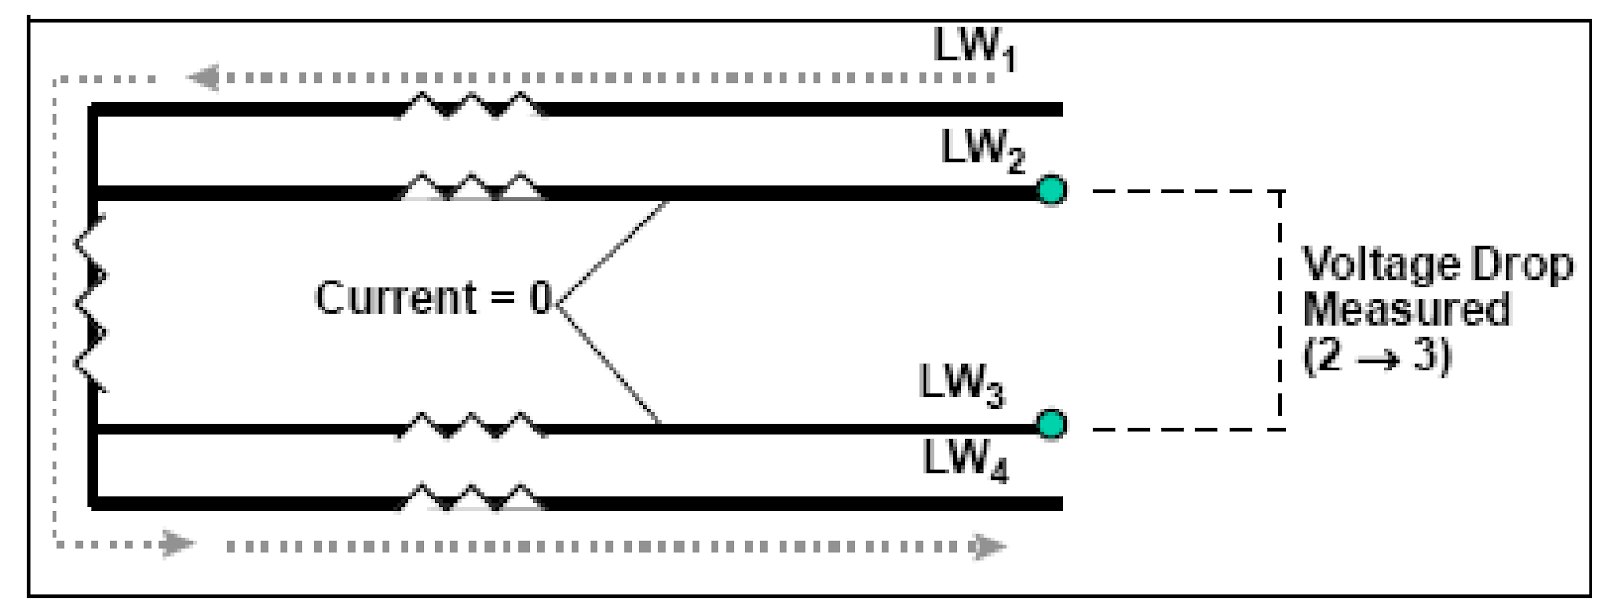 Lead wire compensation for 4 wire RTD